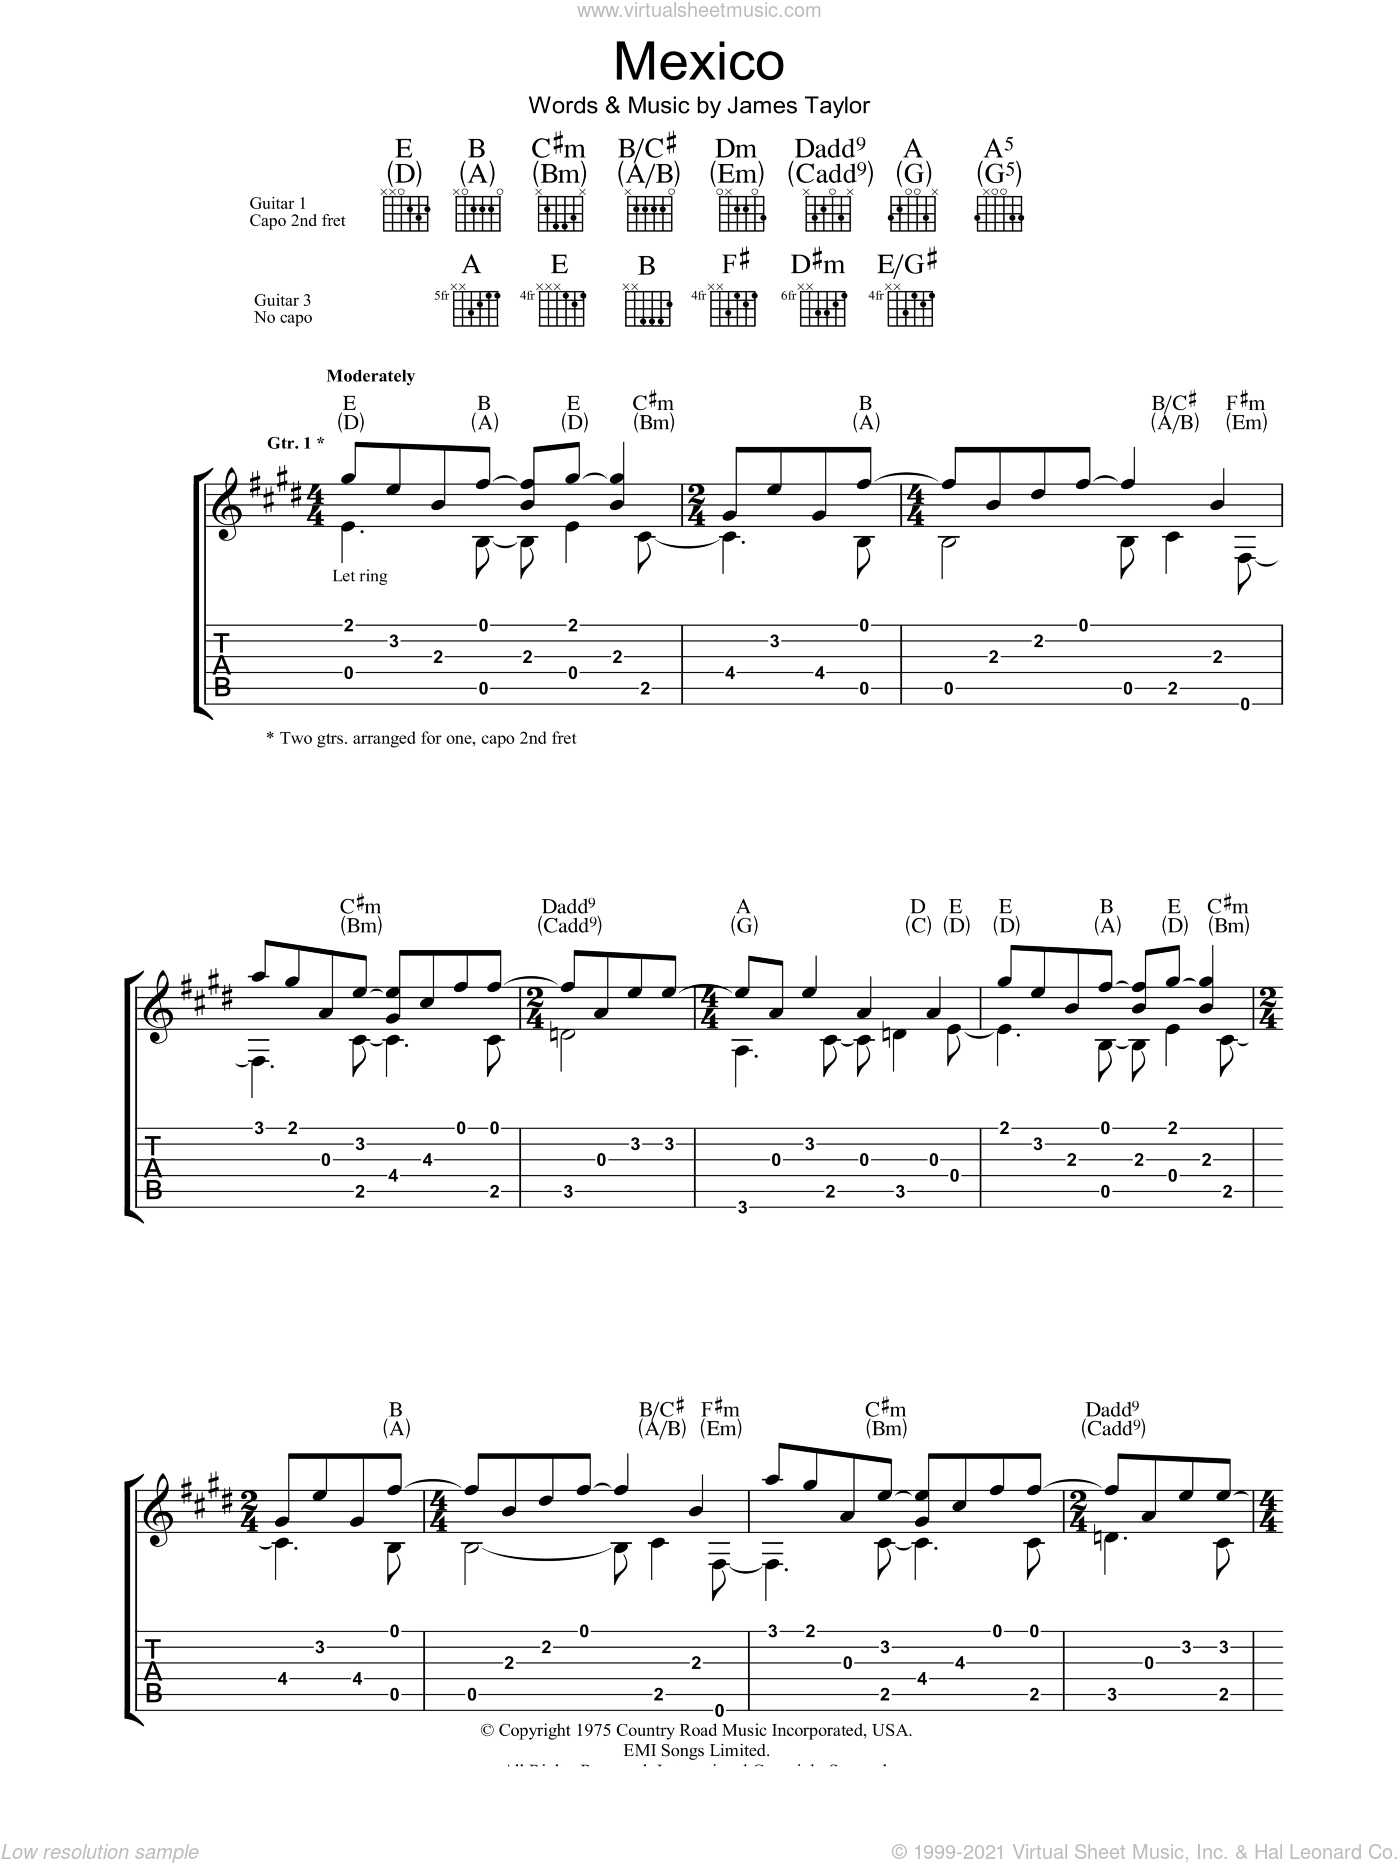 Mexico sheet music for guitar (tablature) by James Taylor, intermediate skill level